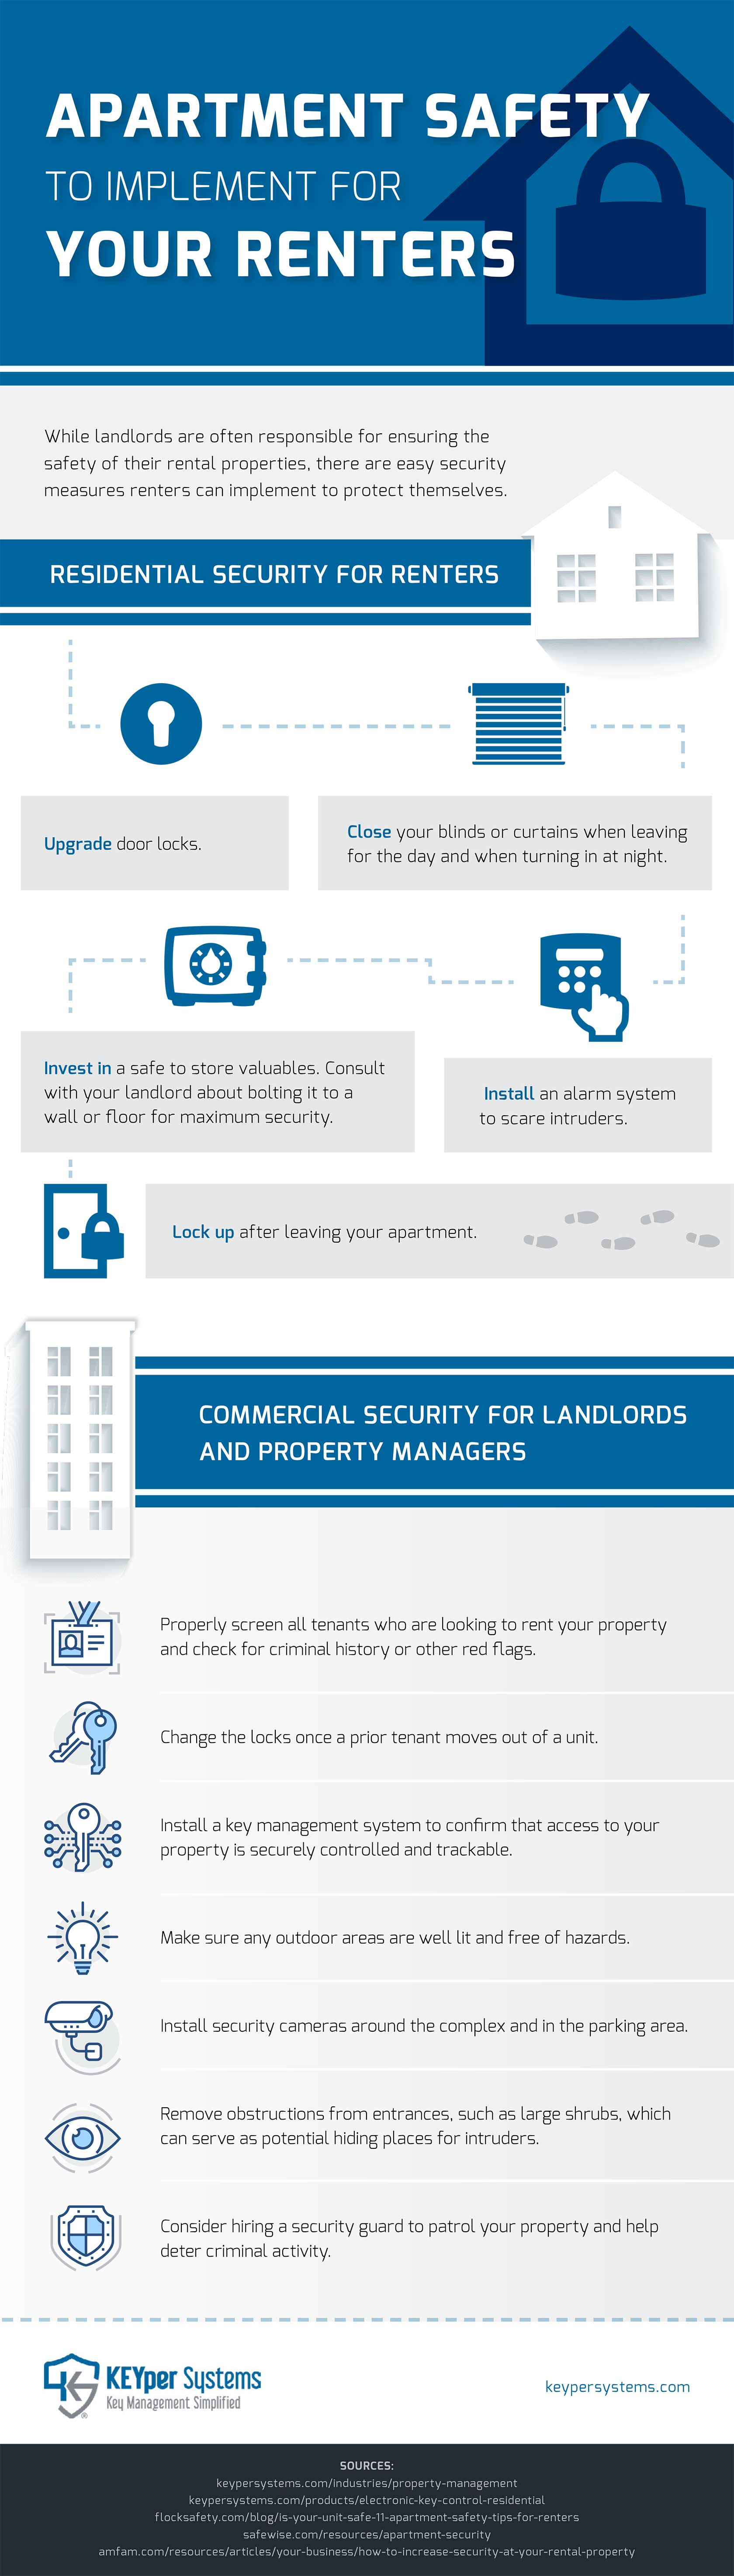 Apartment Safety Tips For Renters And Landlords Infographic